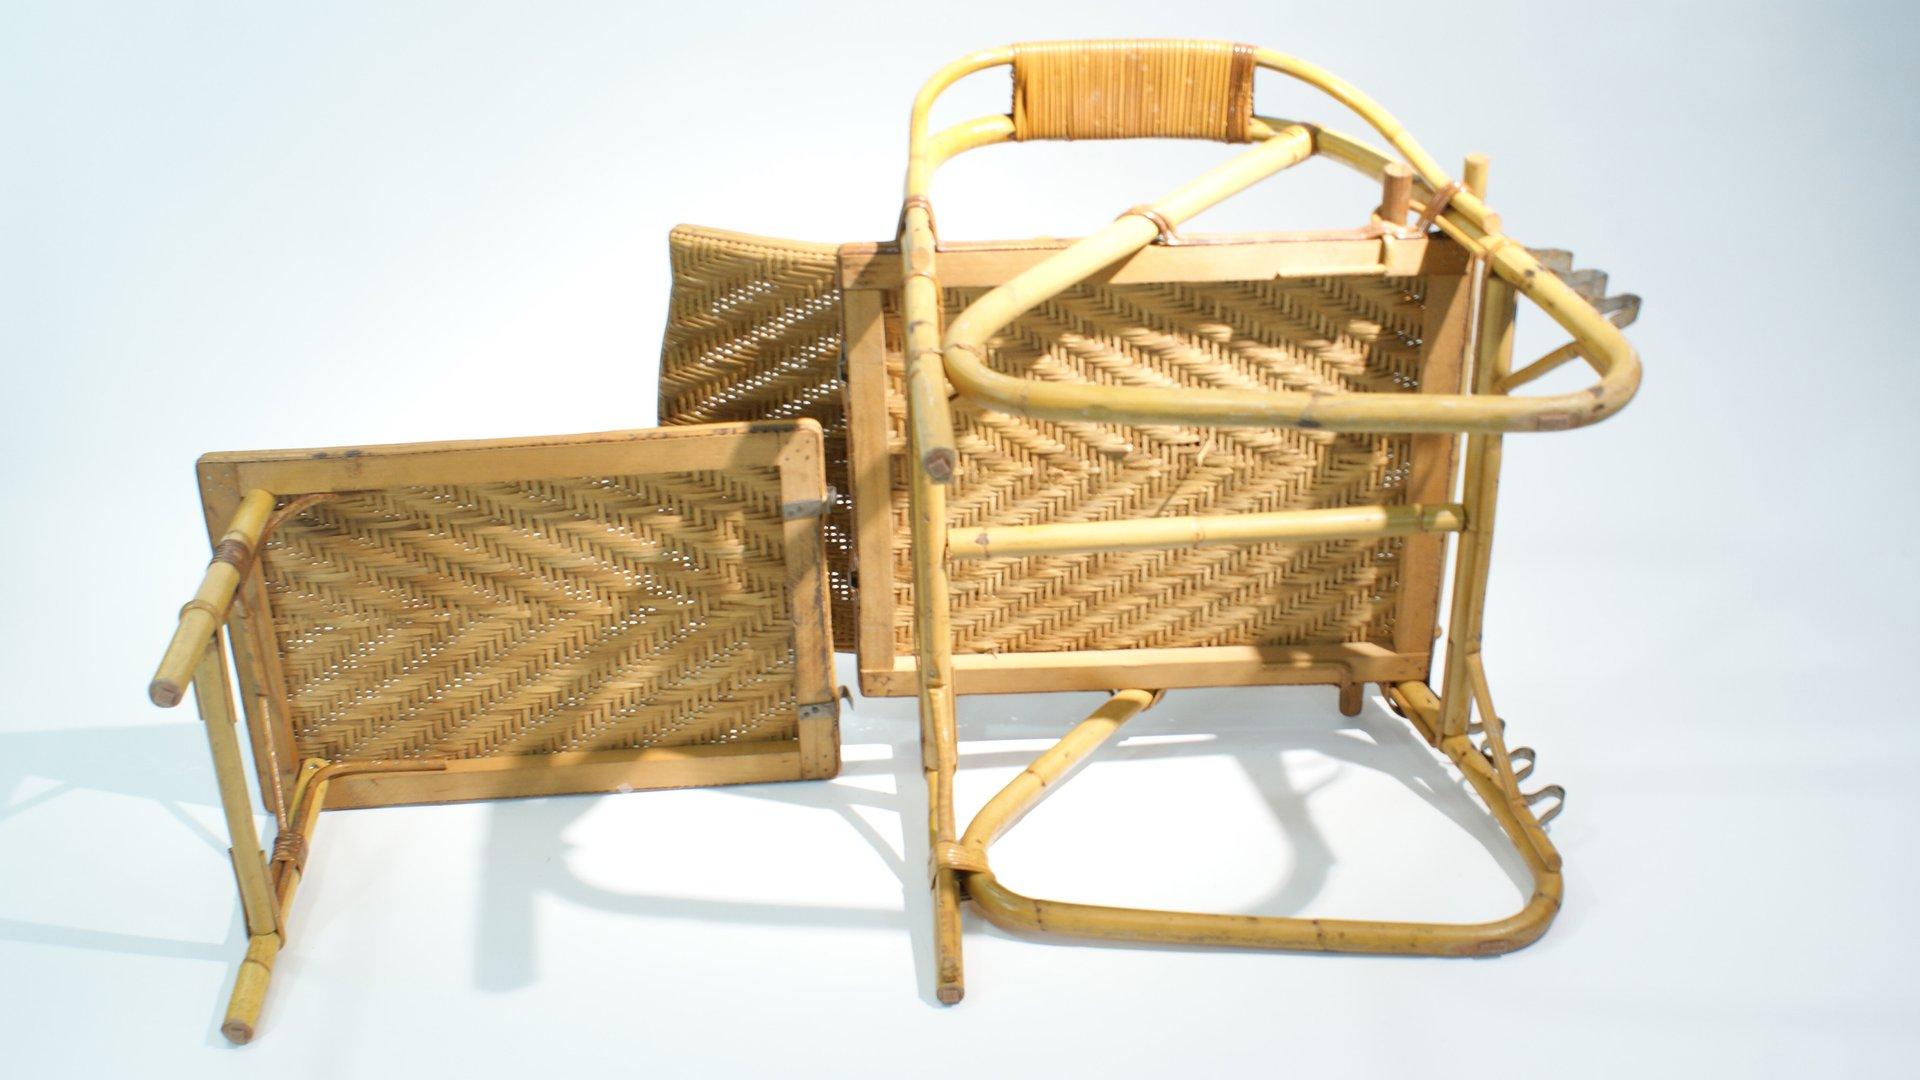 Best Daybeds Canada Adjustable Rattan And Bamboo Lounge Chair, 1940s For Sale